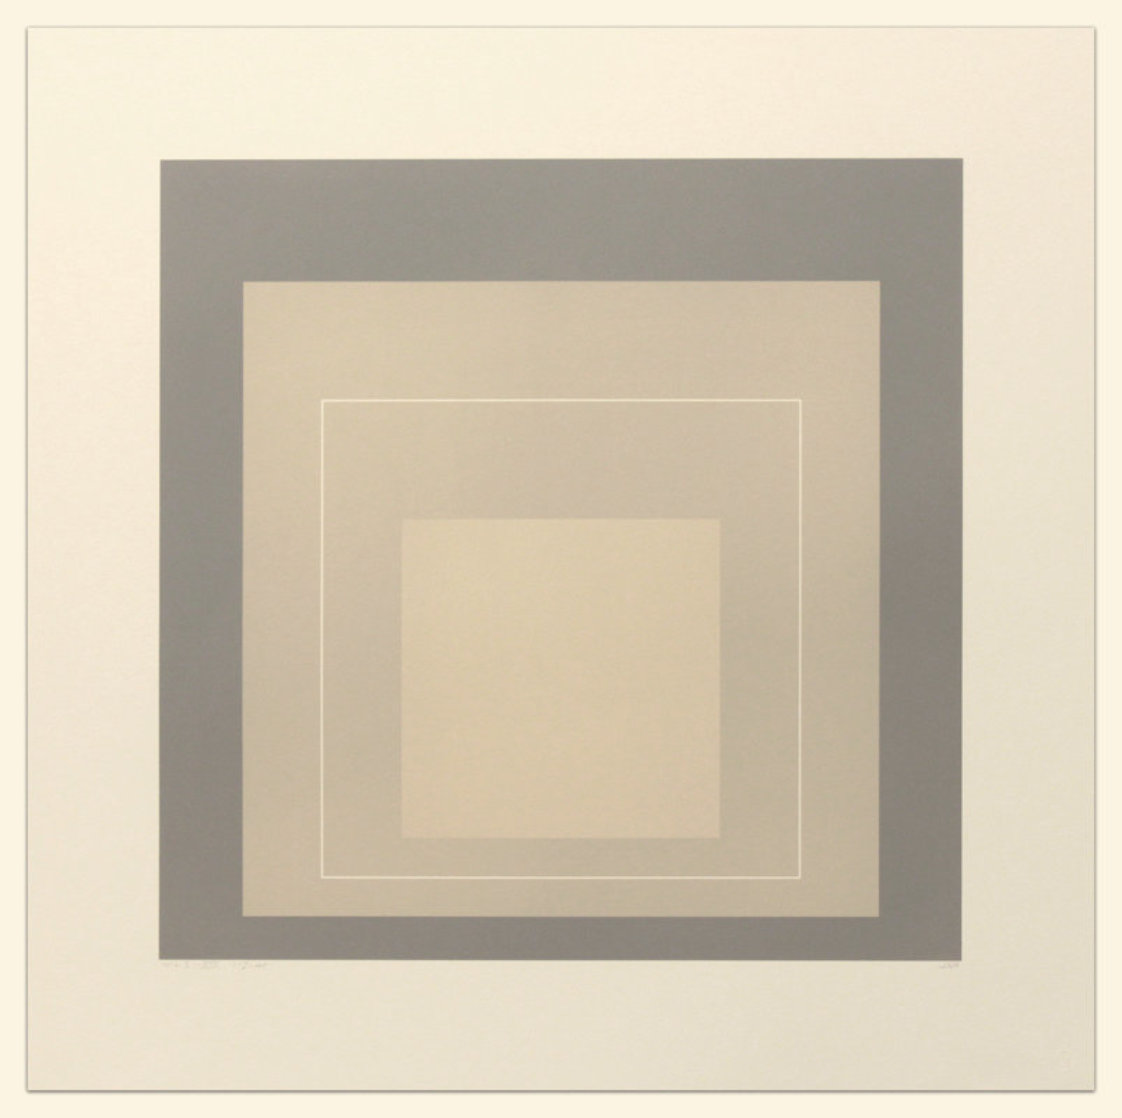 White Line Squares (Series Ii), XIV 1966 Limited Edition Print by Josef Albers